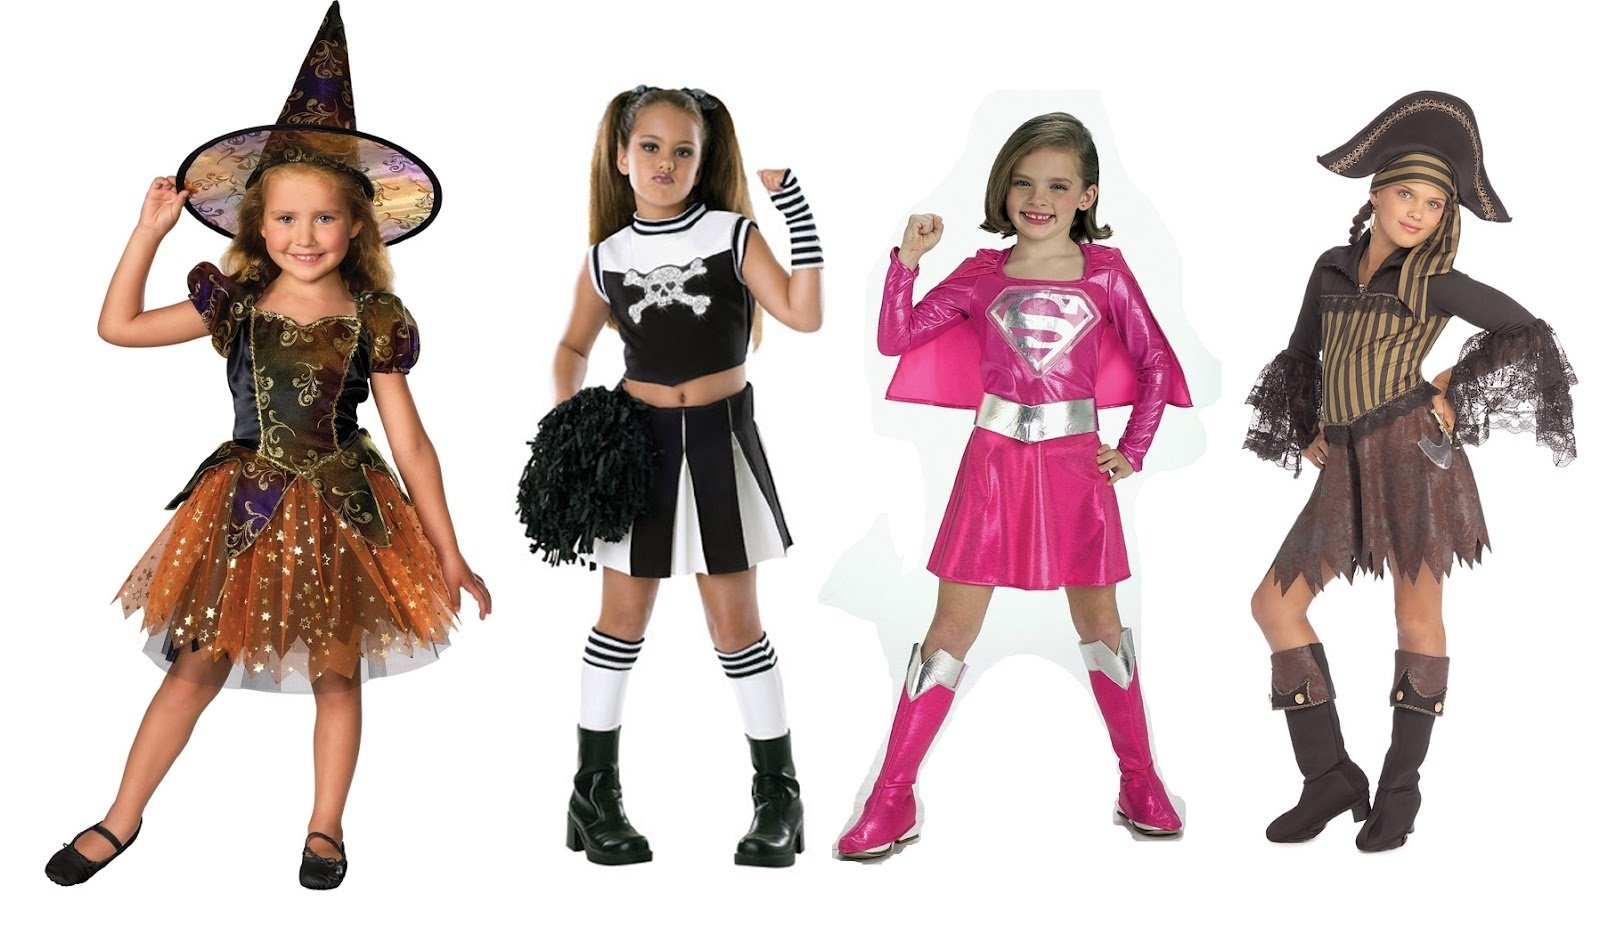 10 Fashionable Halloween Costume Ideas For Kids girls kids costume for halloween halloween costume ideas for 1 2020